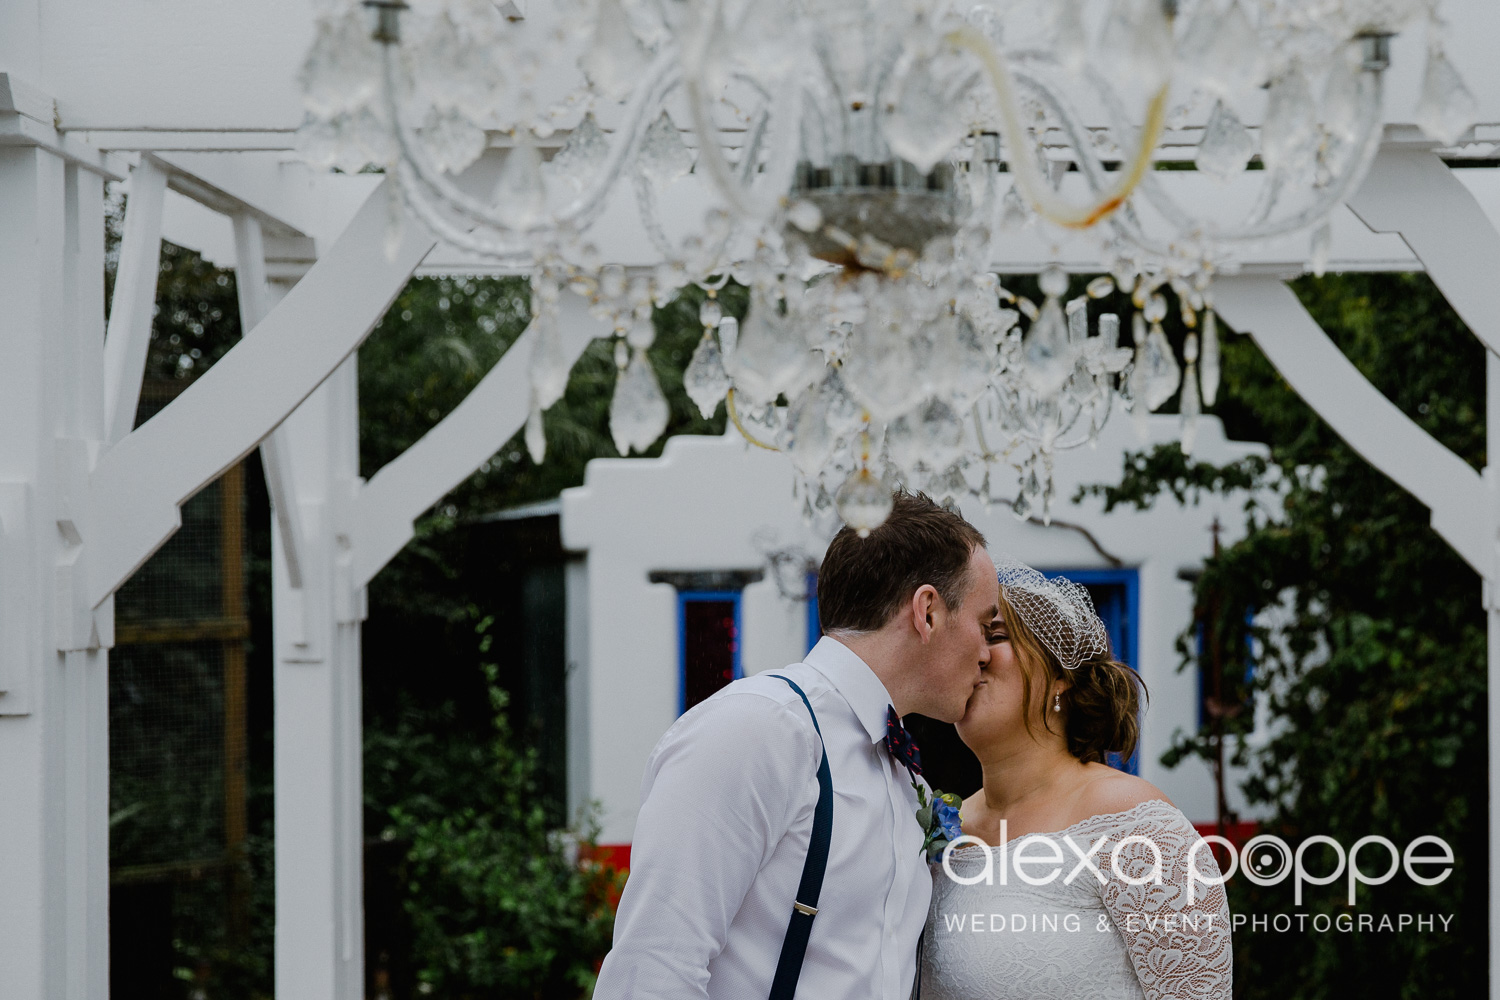 KM_elopement_lowerbarns_28.jpg